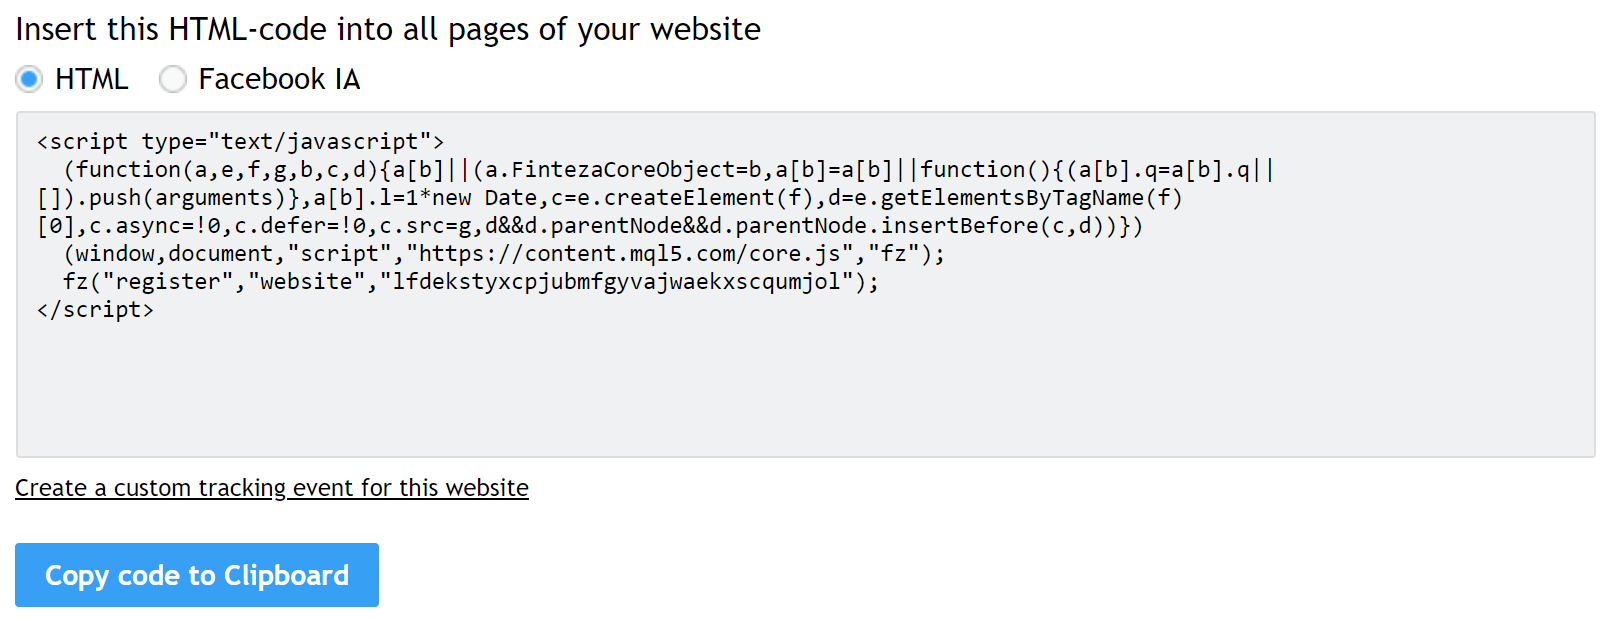 Copy and paste the HTML code into your site's head tags